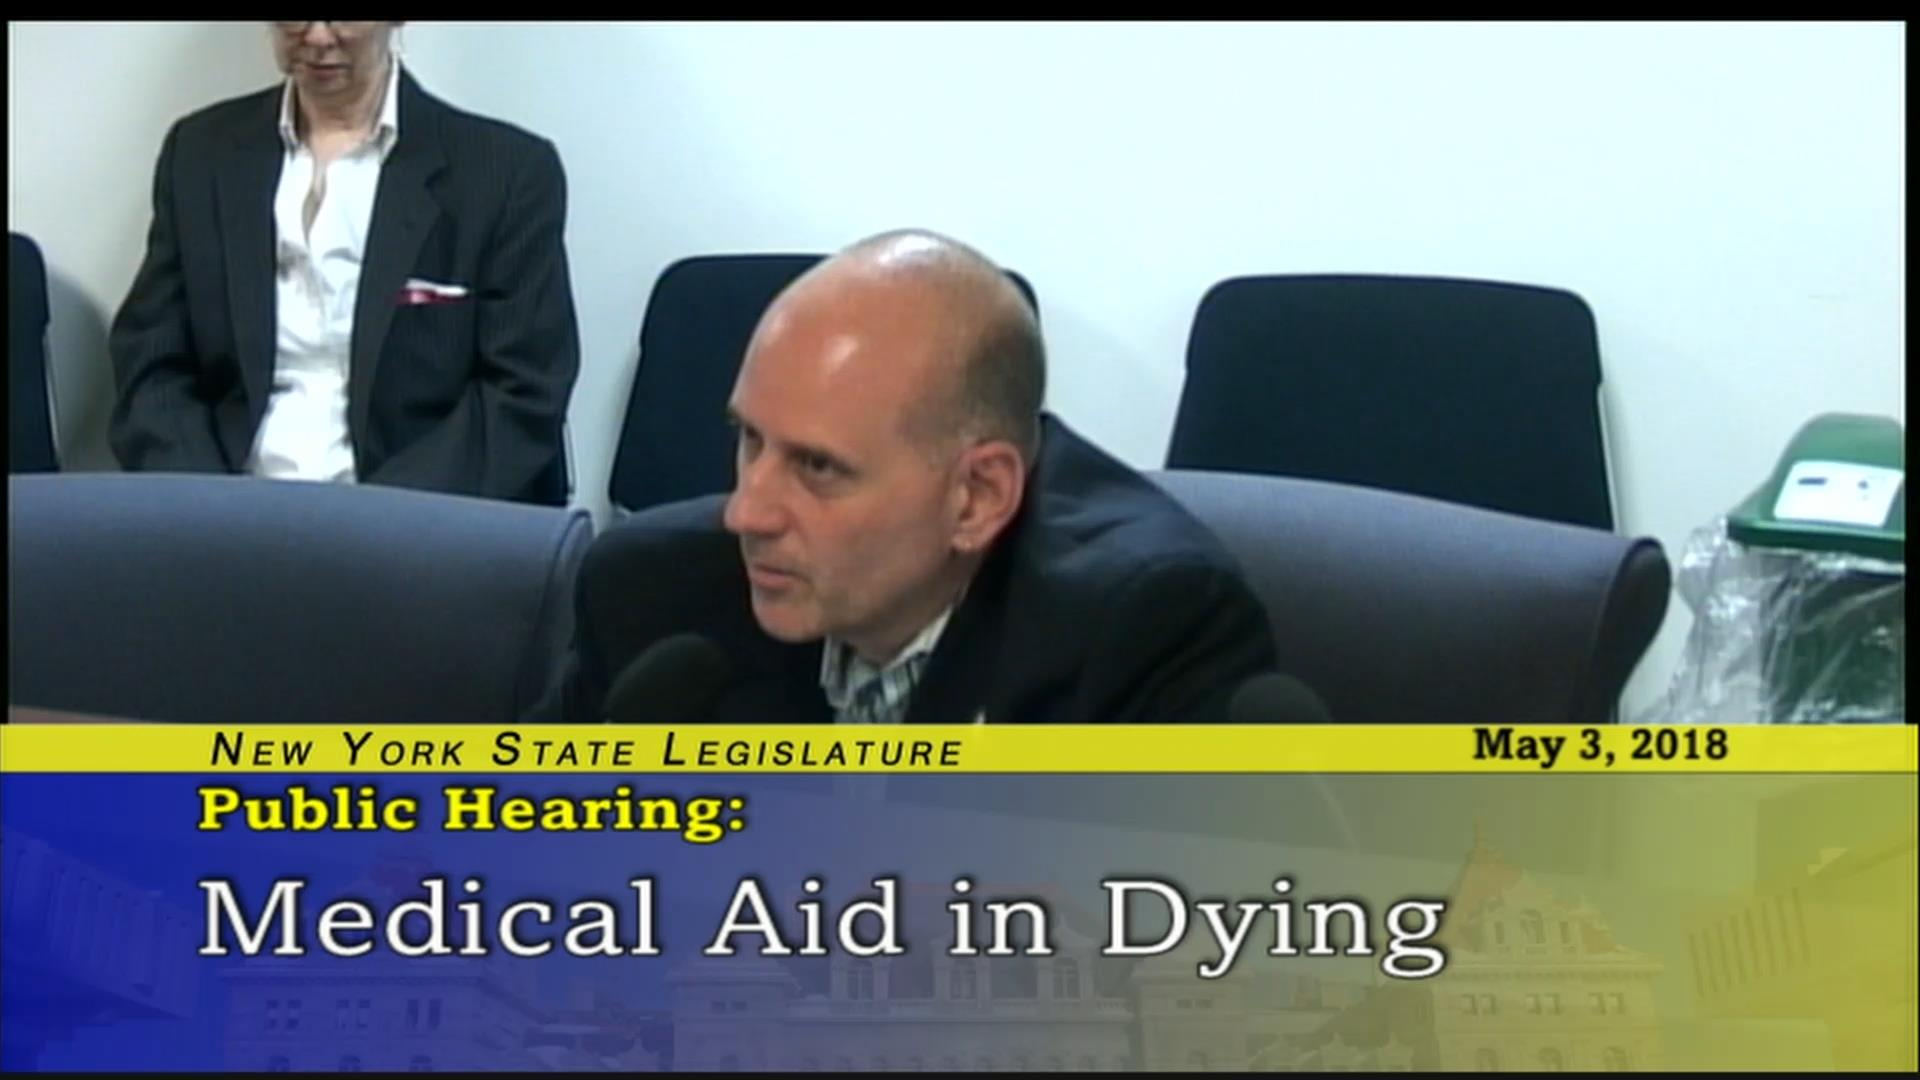 Assemblymember Epstein Comments During a Public Hearing on Medical Aid in Dying